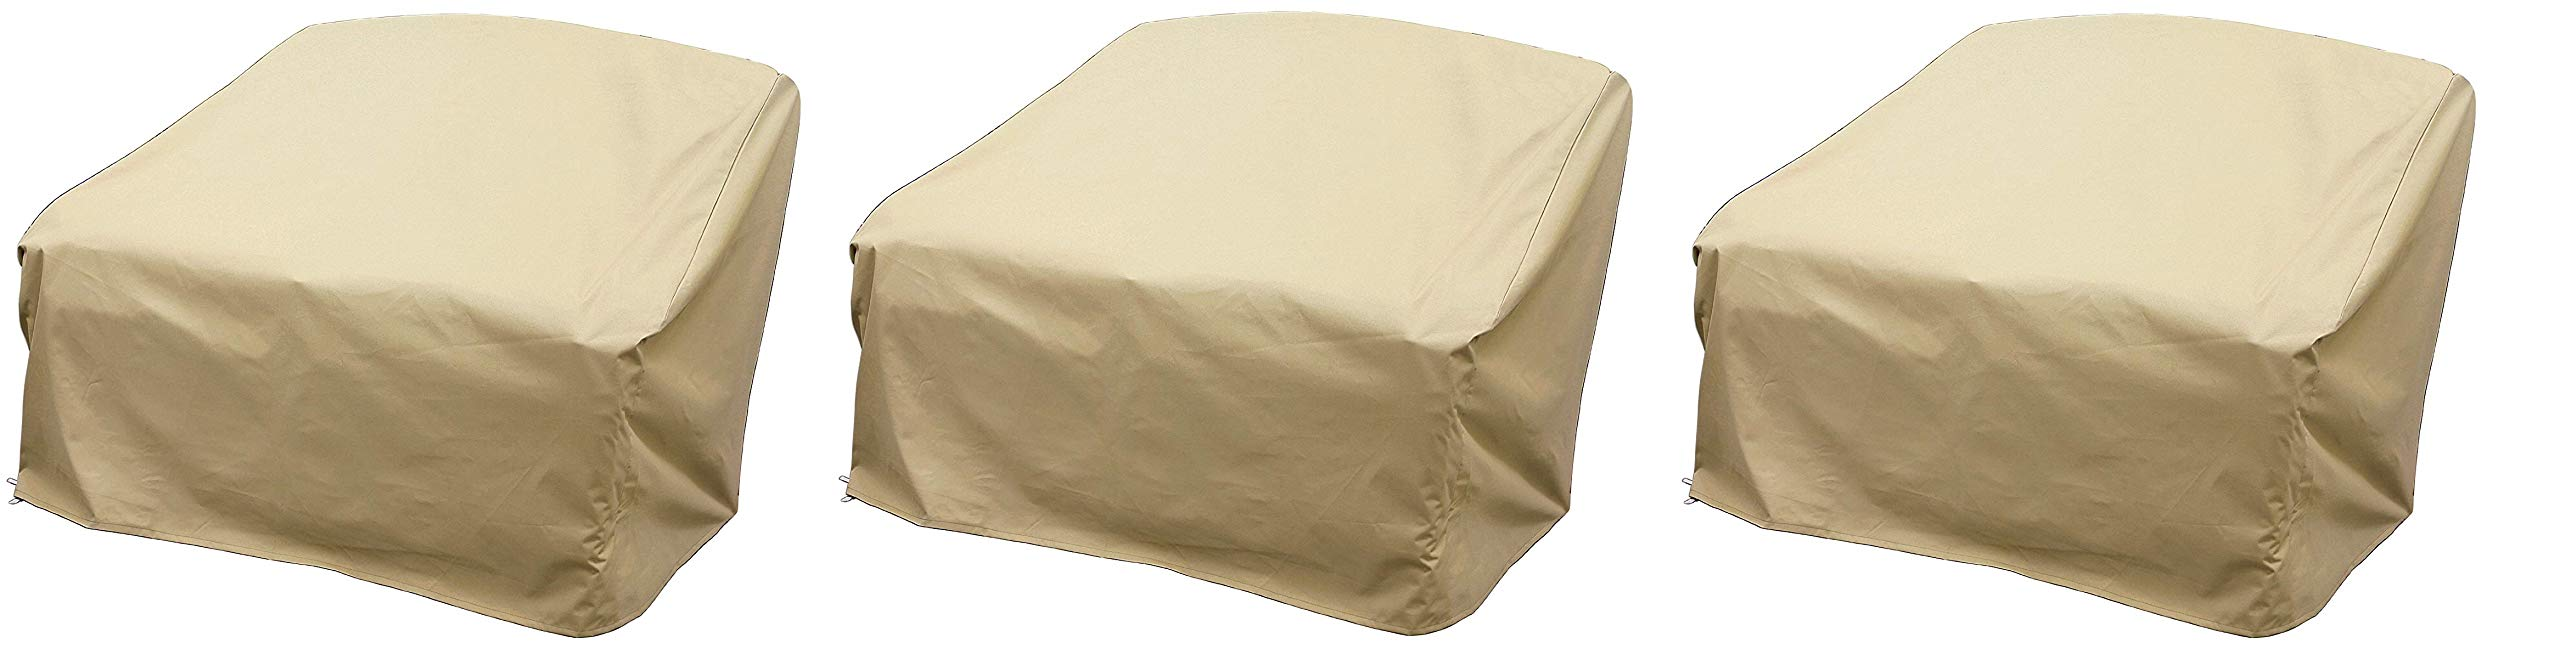 Modern Leisure 7466 Patio Love Seat Cover, Outdoor Patio Furniture Cover, Waterproof, 55 L x 33 W x 38 H inches, Tan (Pack of 3)